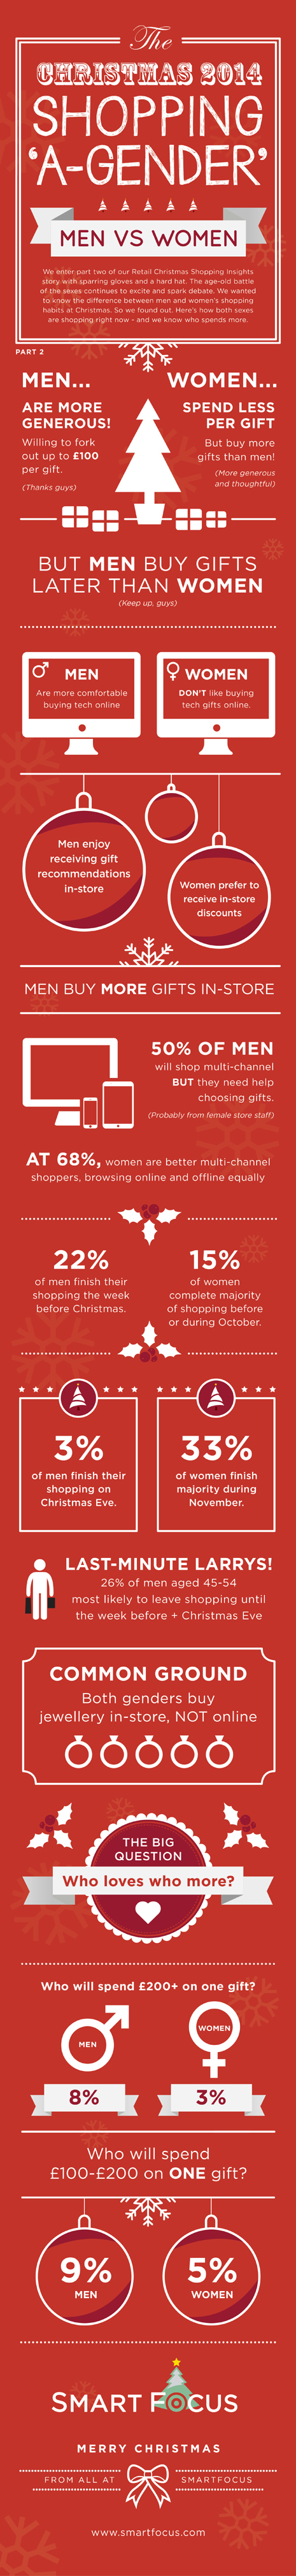 men-vs-women--who-spends-more-at-christmas_5485980a76fff pq